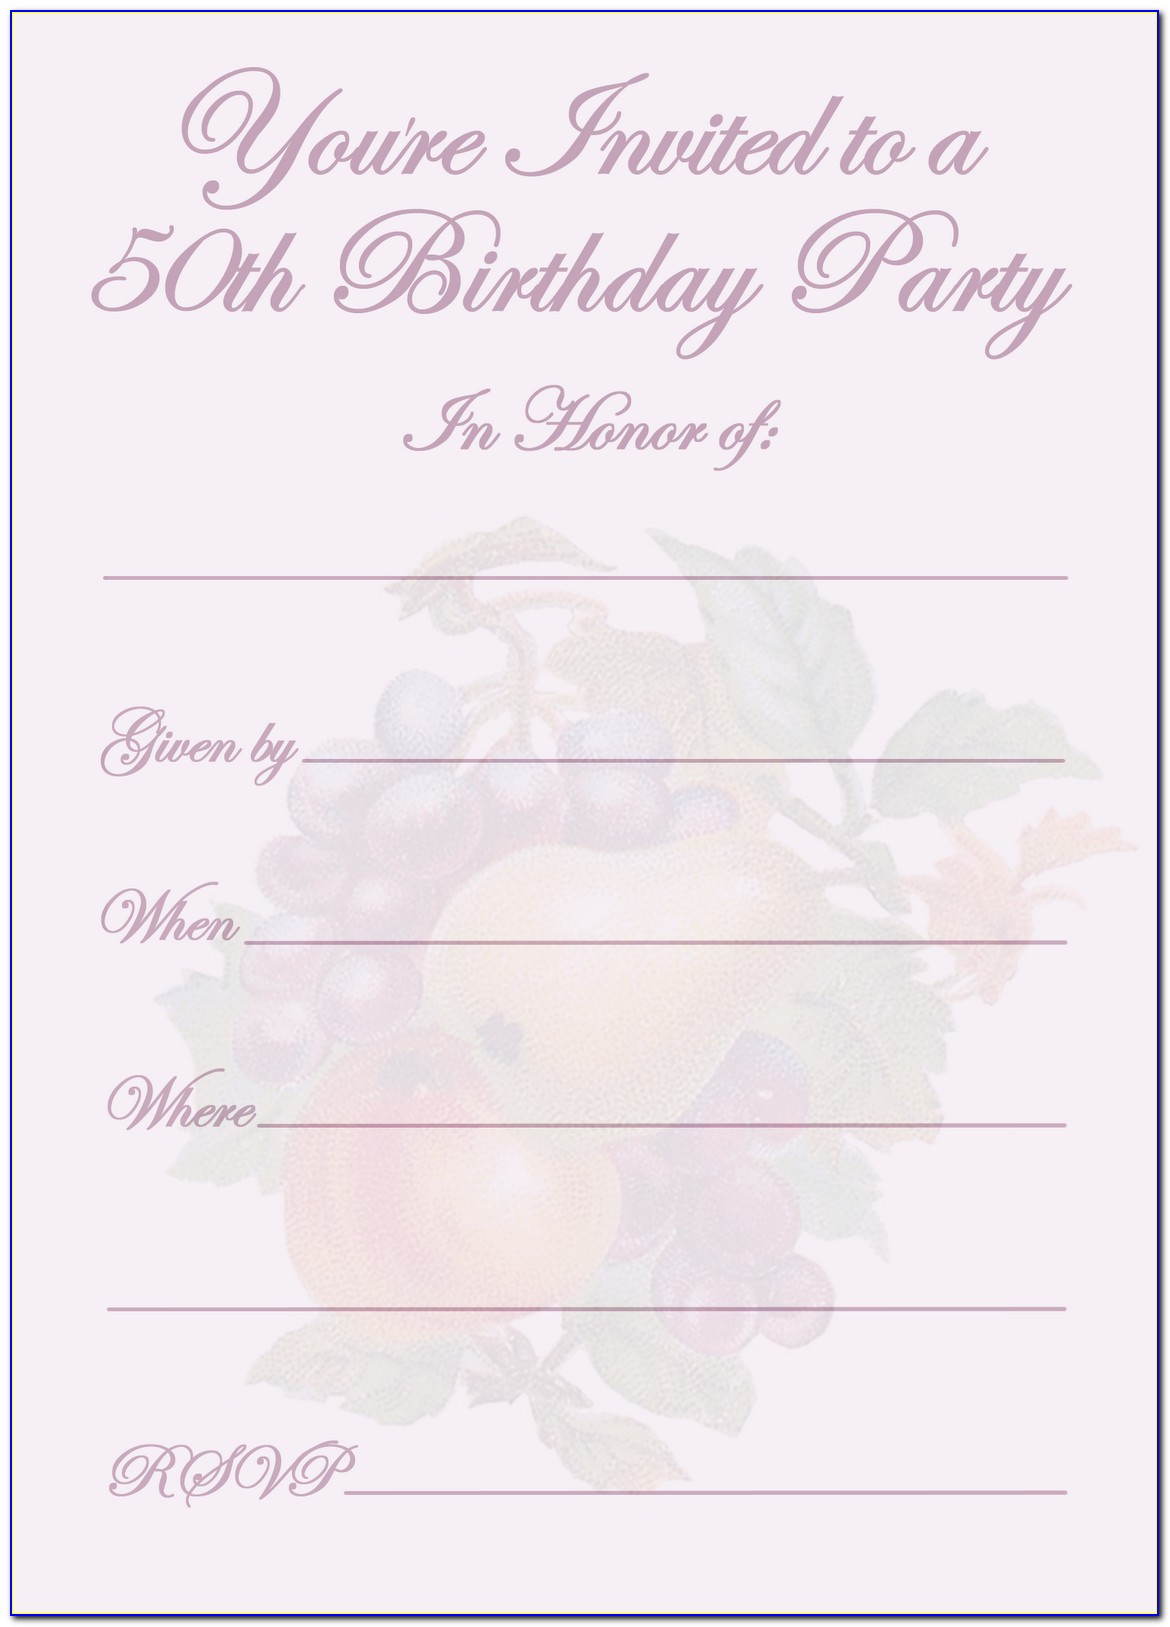 Surprise 50th Birthday Party Invitations Templates Free